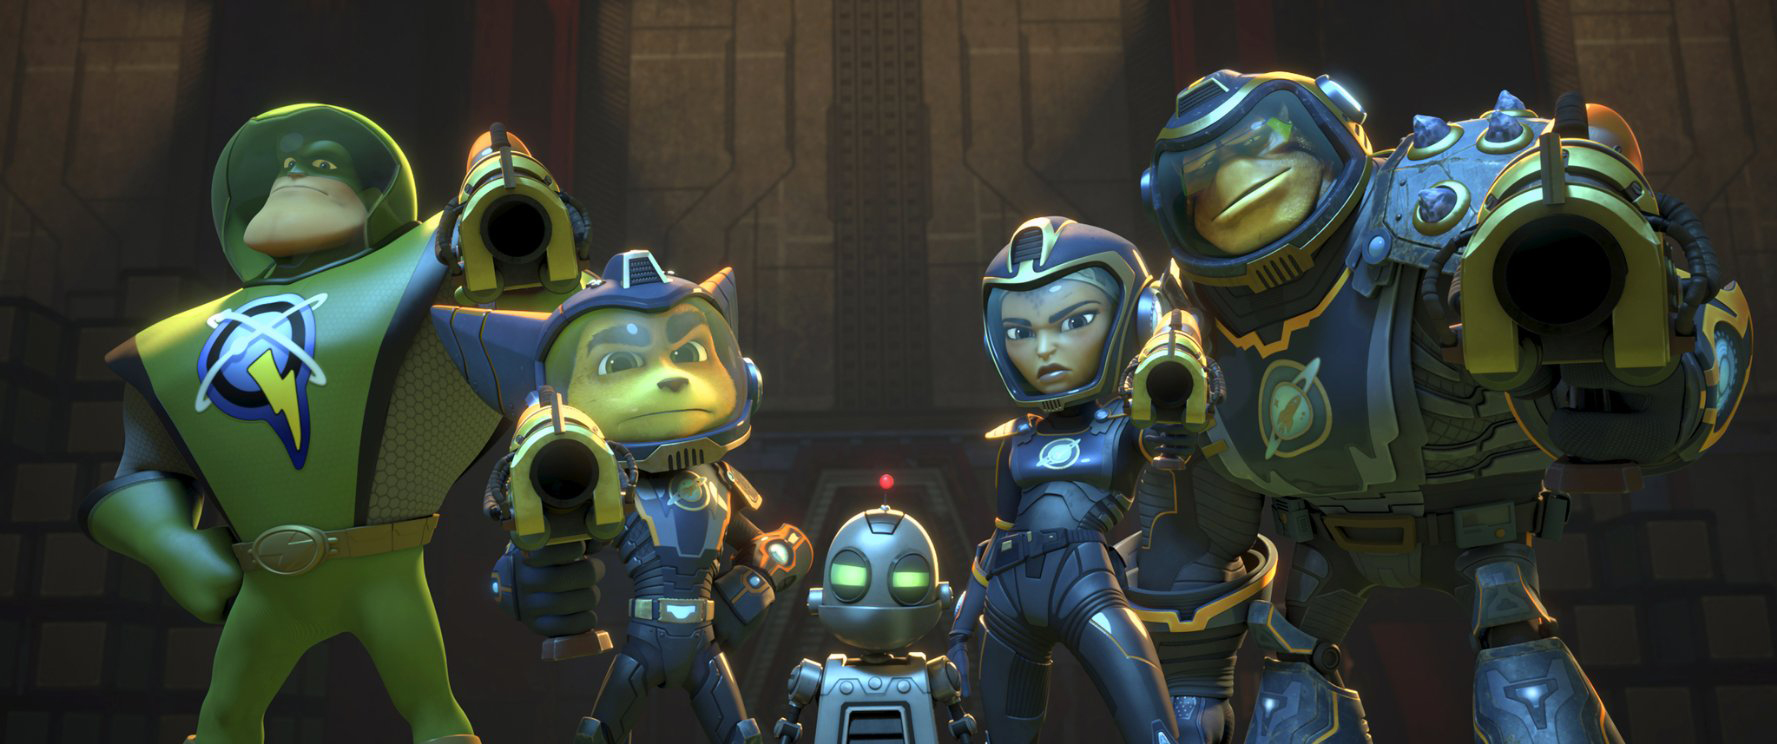 ratchet-and-clank-still-02